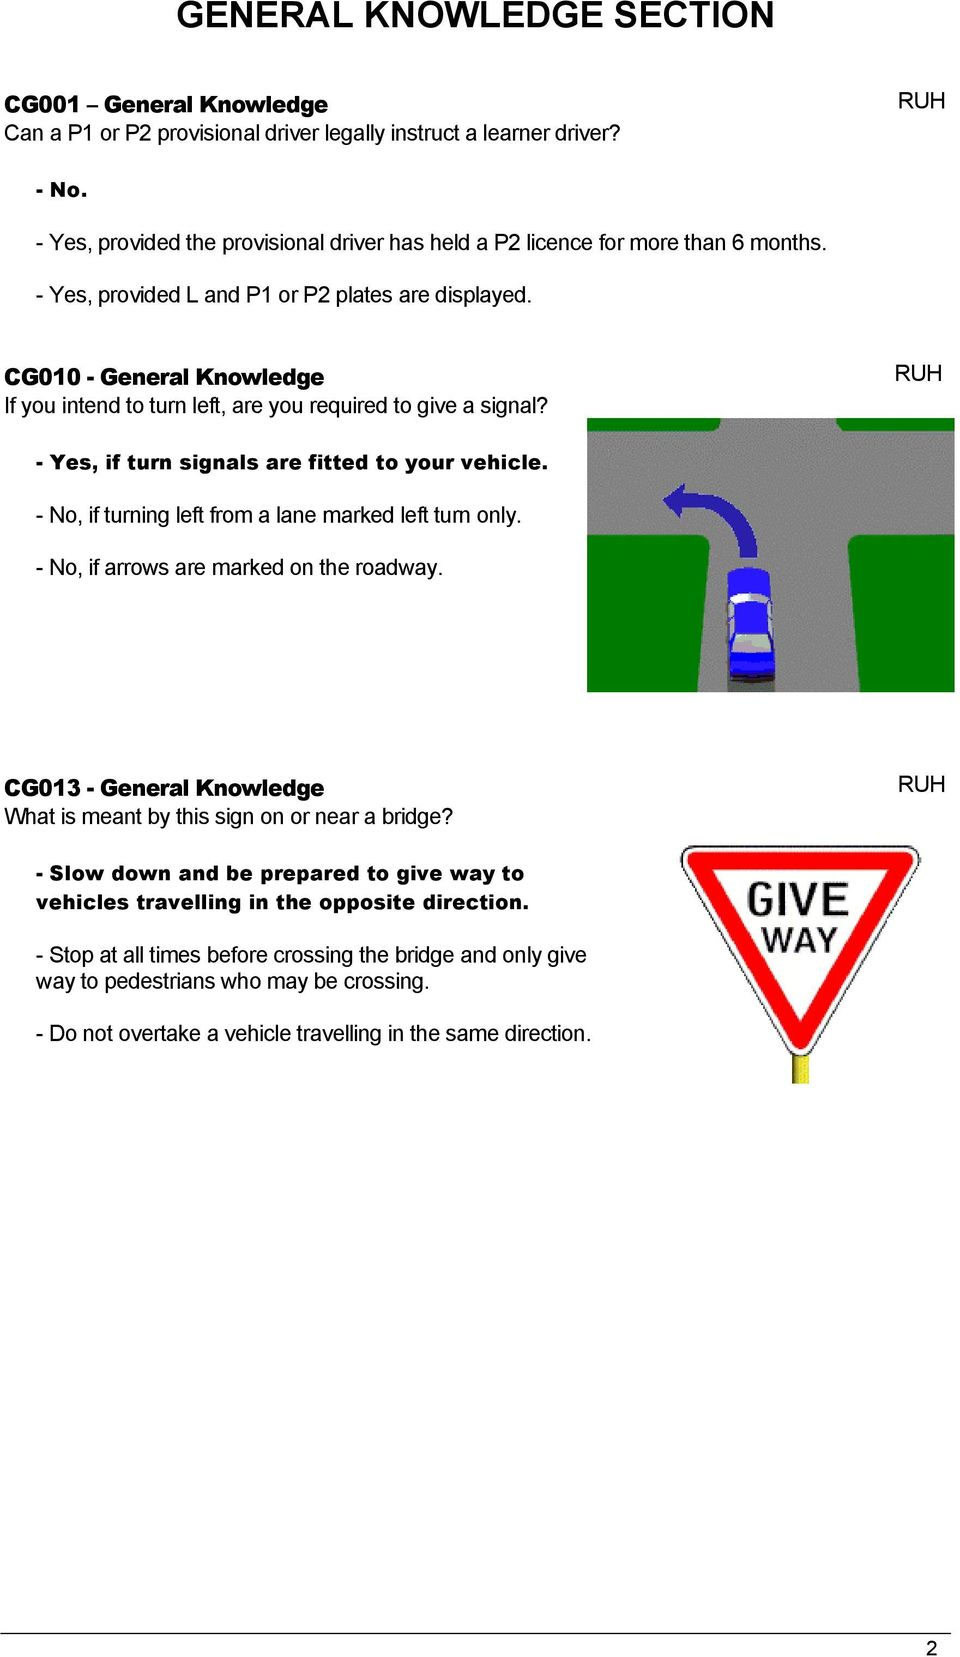 CG010 - General Knowledge If you intend to turn left, are you required to give a signal? - Yes, if turn signals are fitted to your vehicle. - No, if turning left from a lane marked left turn only.